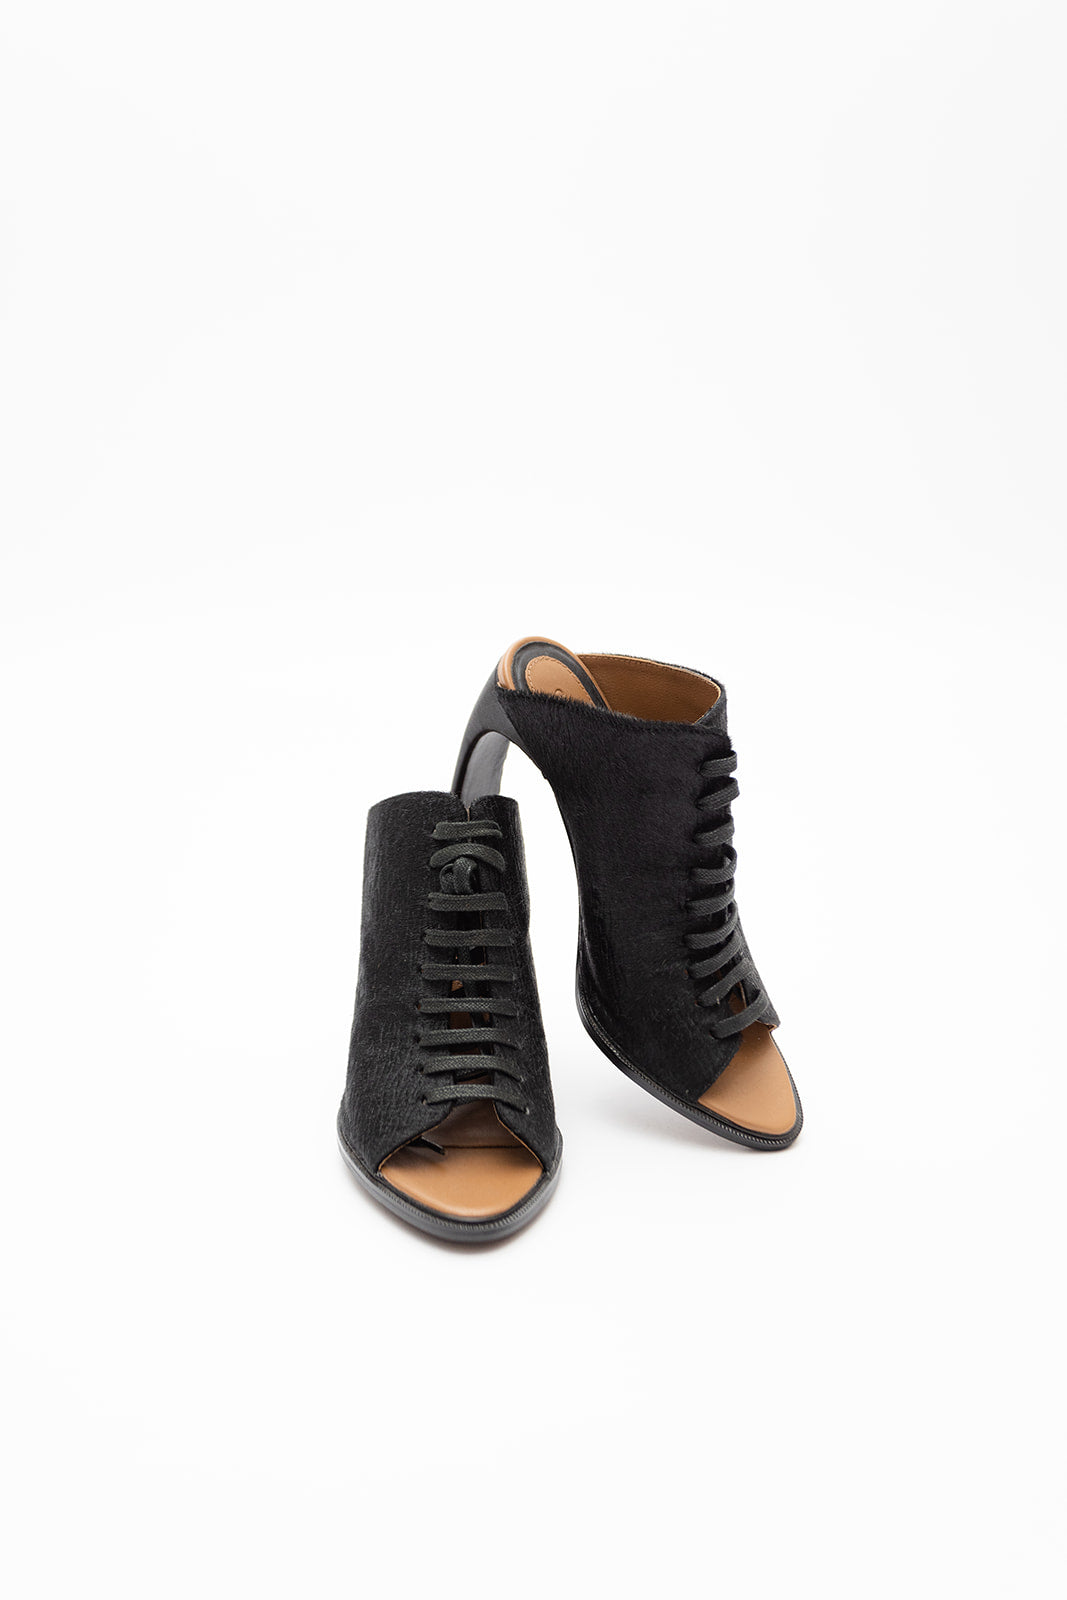 Ginger & Smart Pony Hair Heel